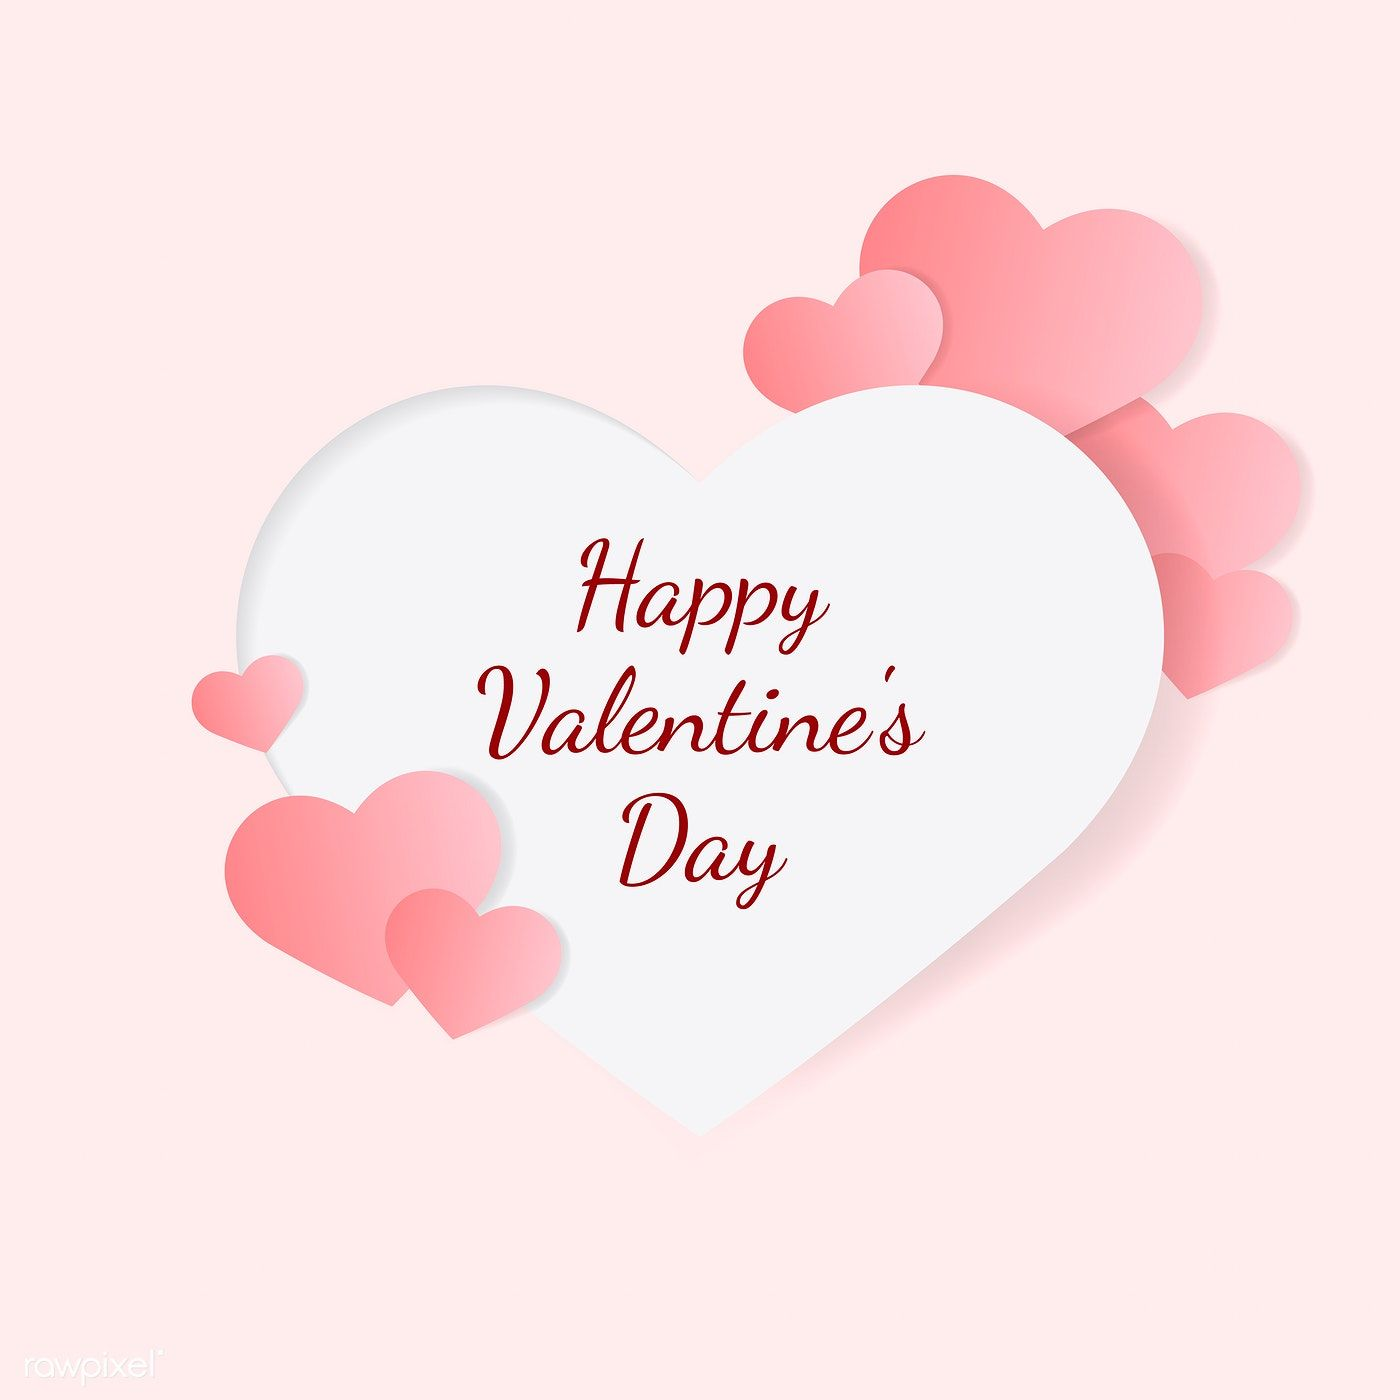 Valentine S Day Vector Design Concept Free Image By Rawpixel Com Sasi Valentines Day Drawing Valentines Day Clipart Valentines Printables Free